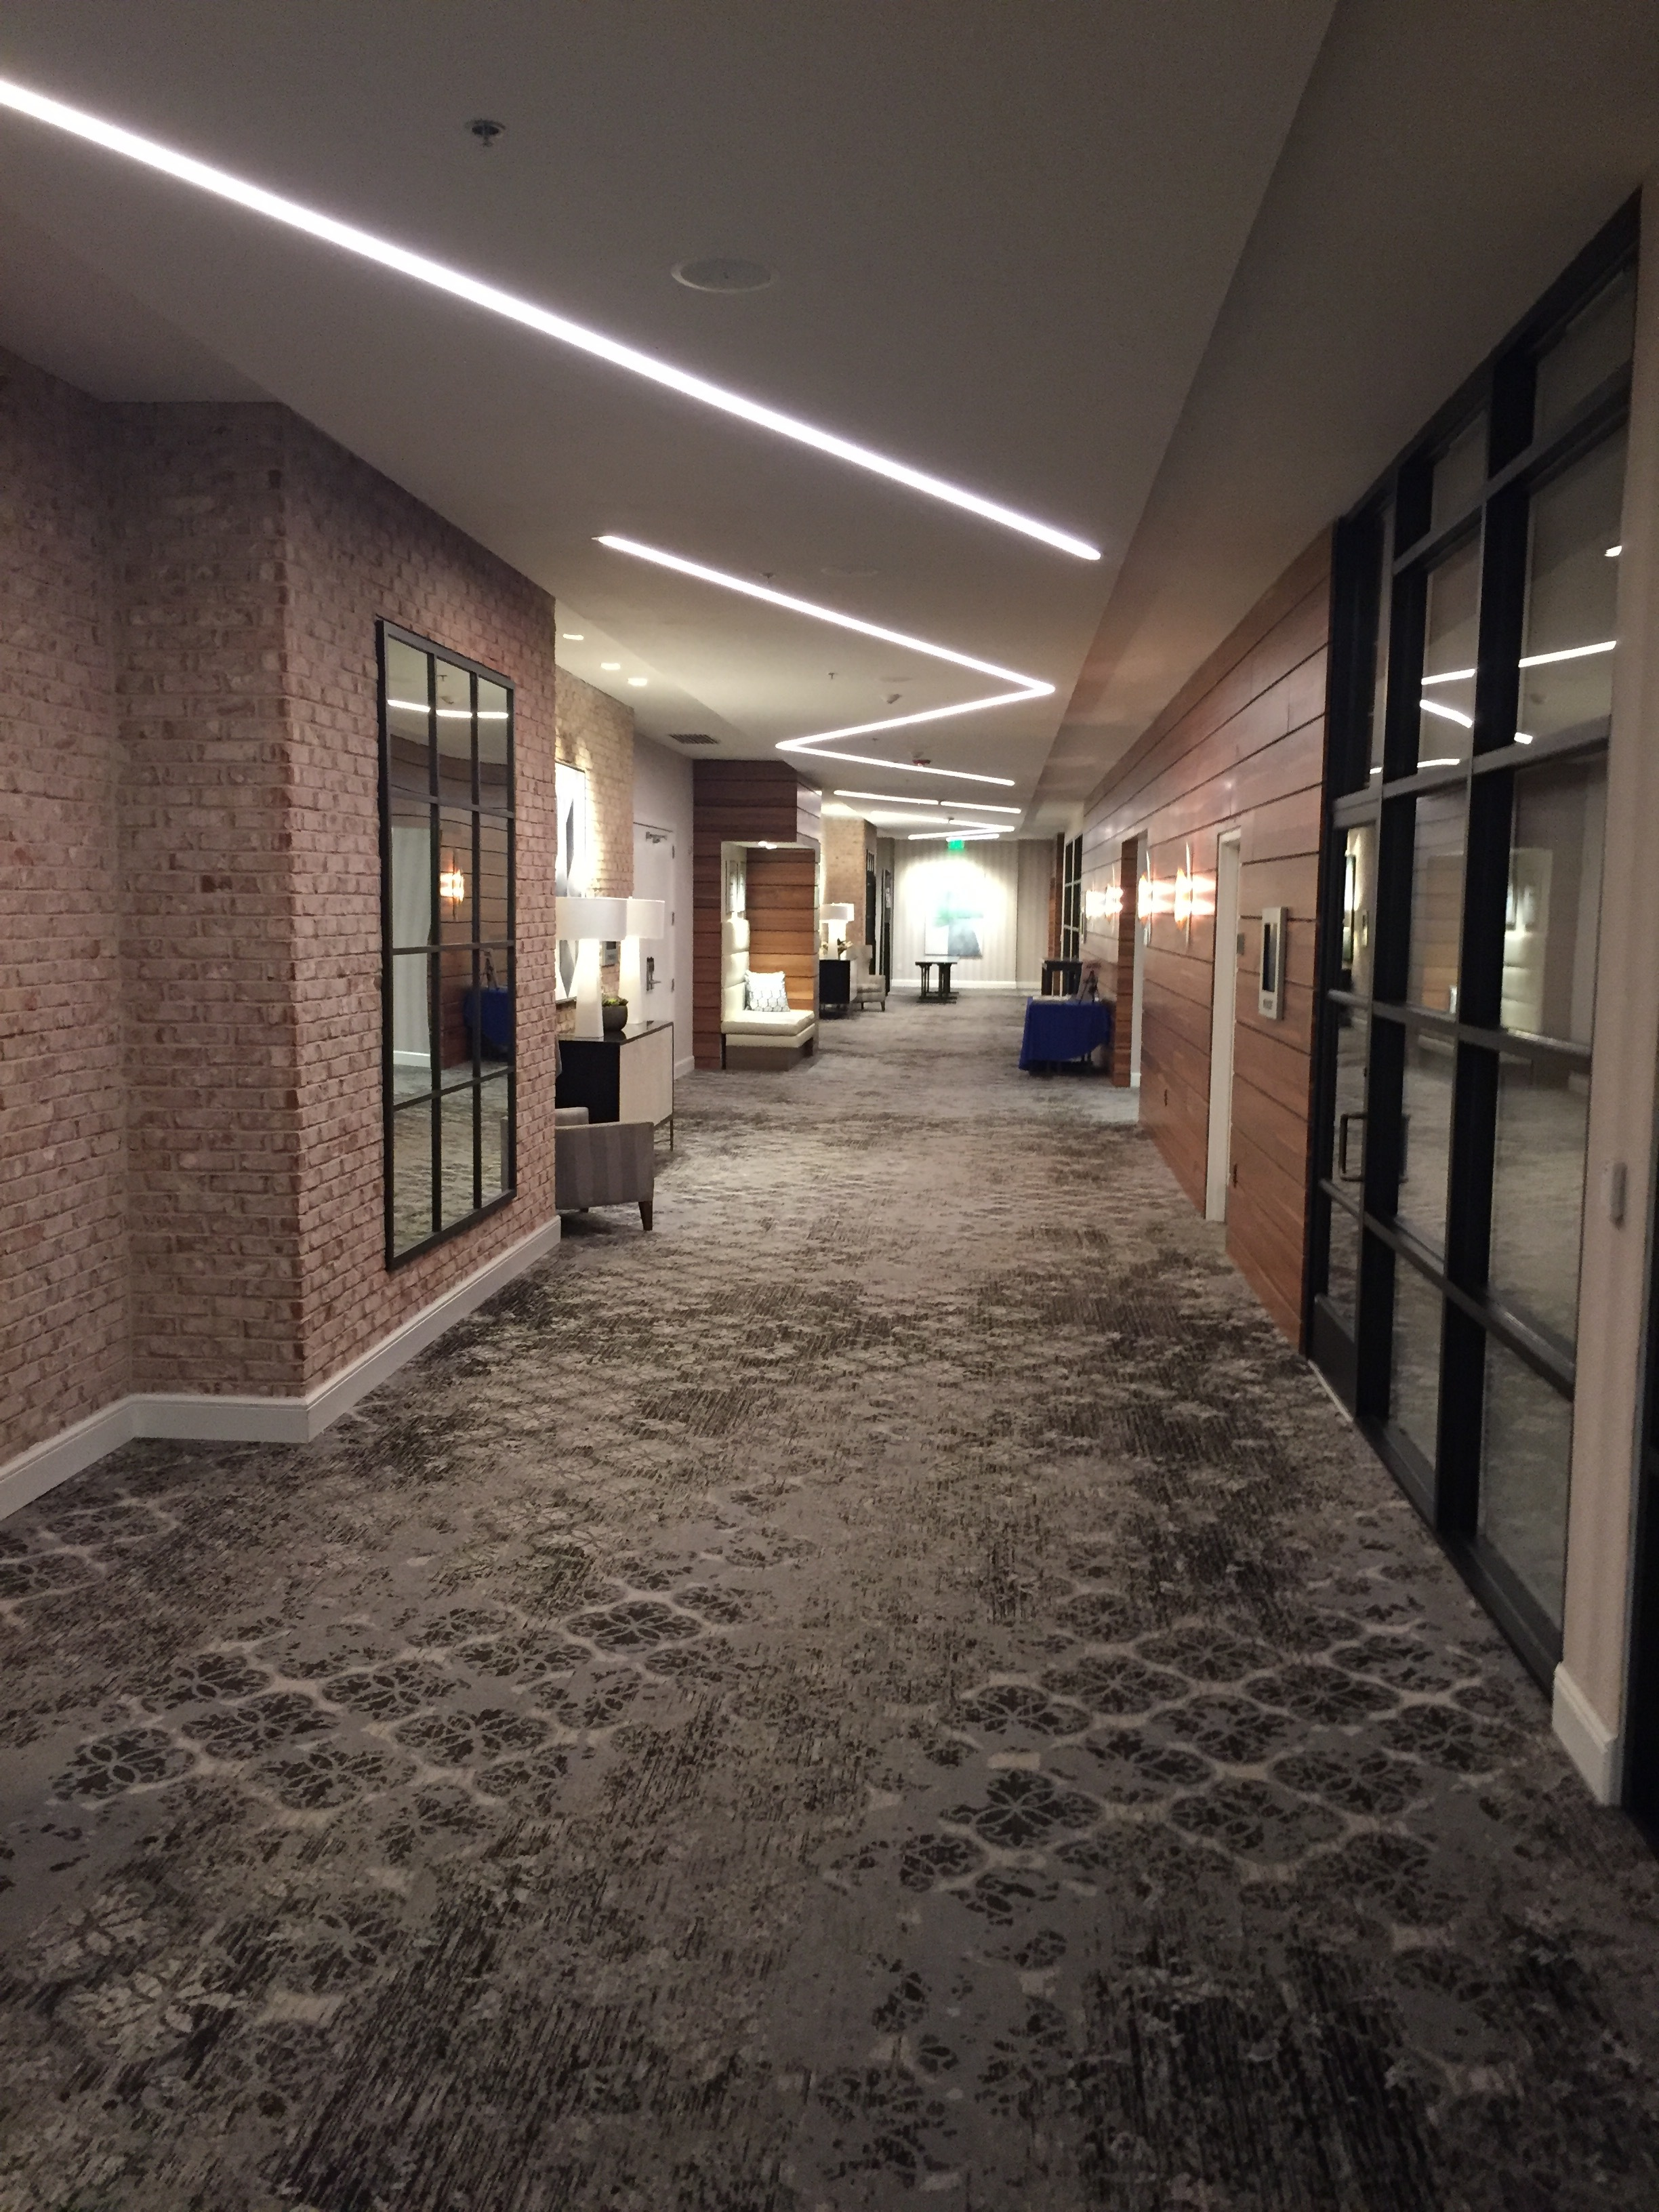 Past the elevator lobby is the meeting and conference room wing.